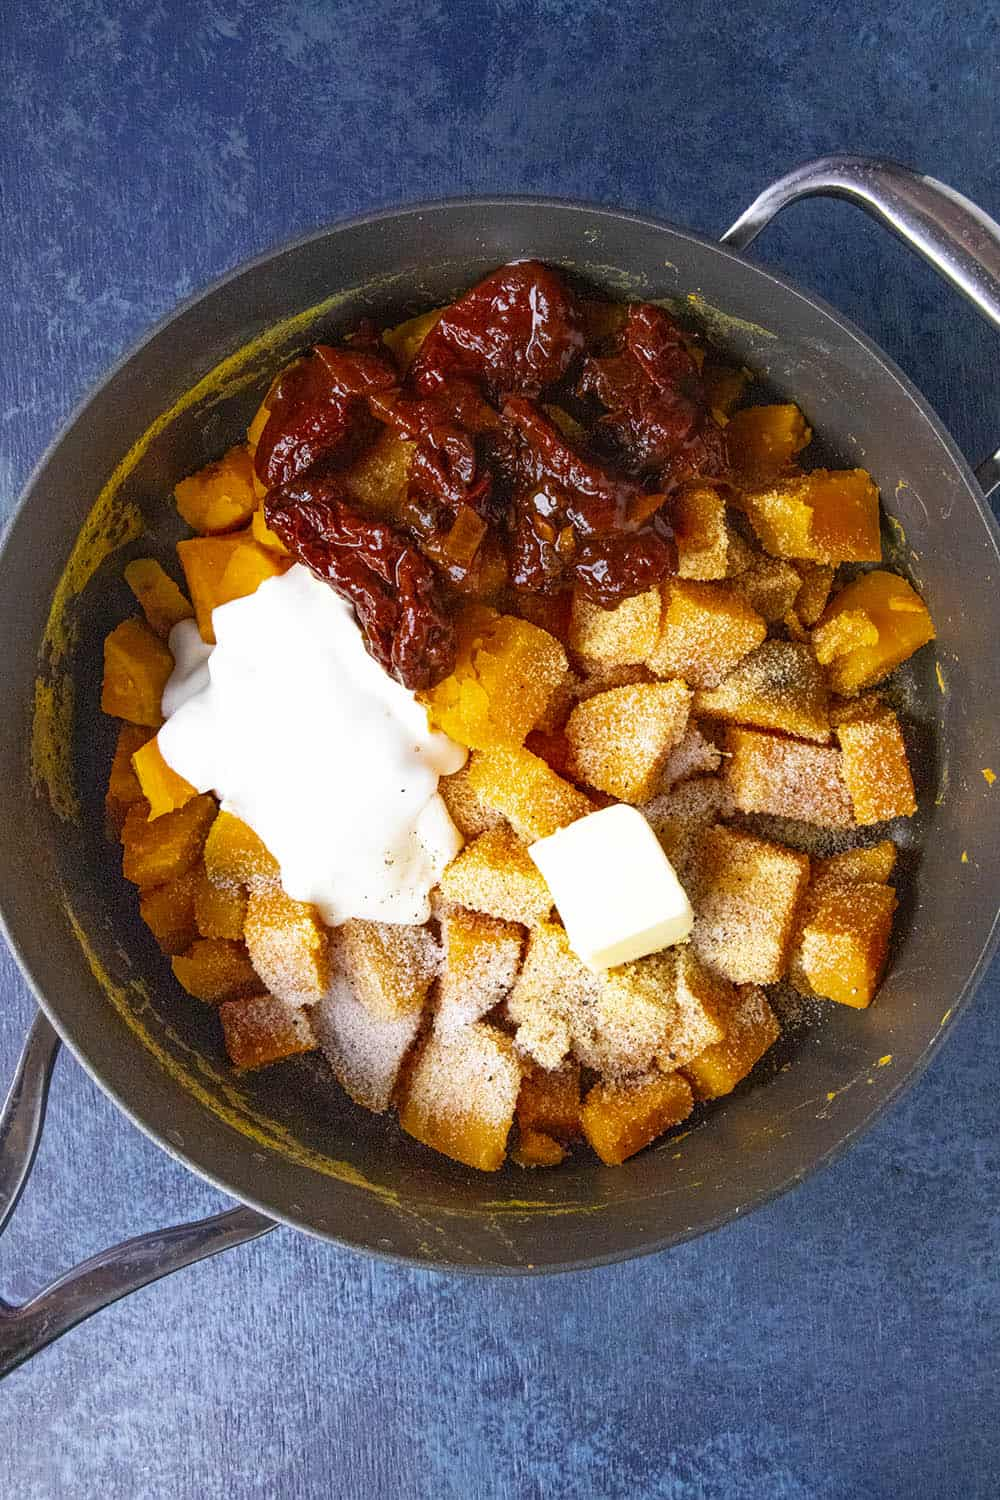 Boiled sweet potatoes in a pot with chipotles, crema, butter and seasonings, ready to mash